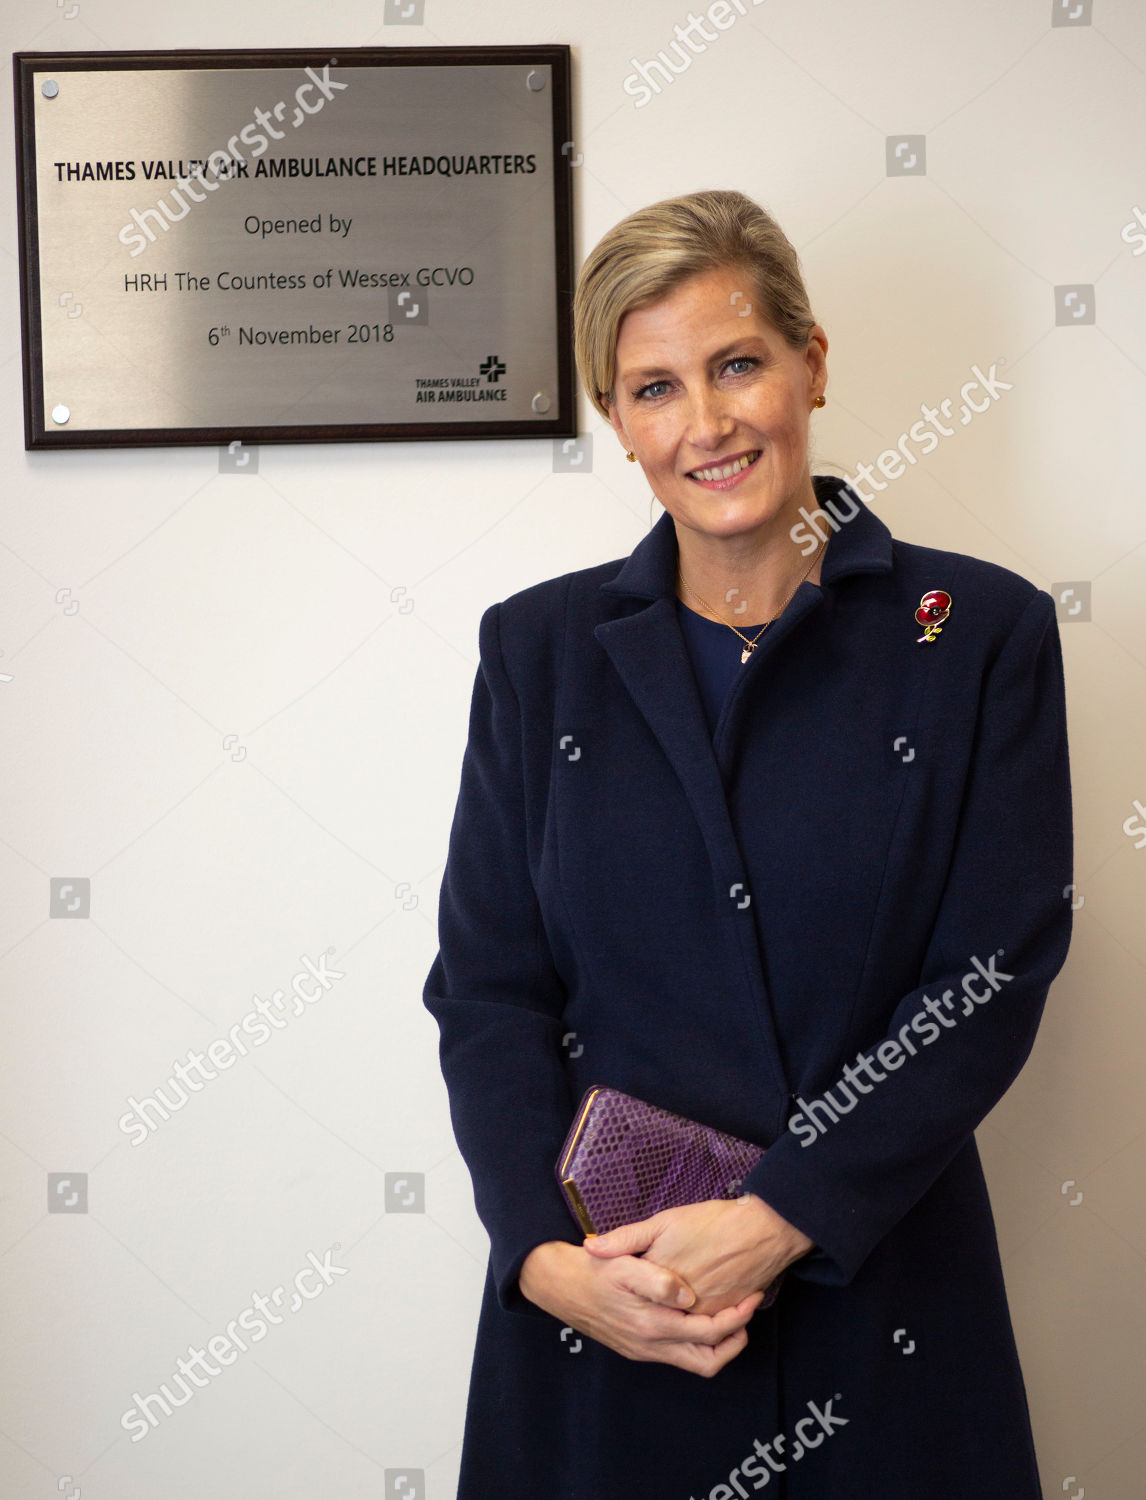 sophie-countess-of-wessex-opens-the-thames-valley-air-ambulance-headquarters-stokenchurch-buckinghamshire-uk-shutterstock-editorial-9968468q.jpg